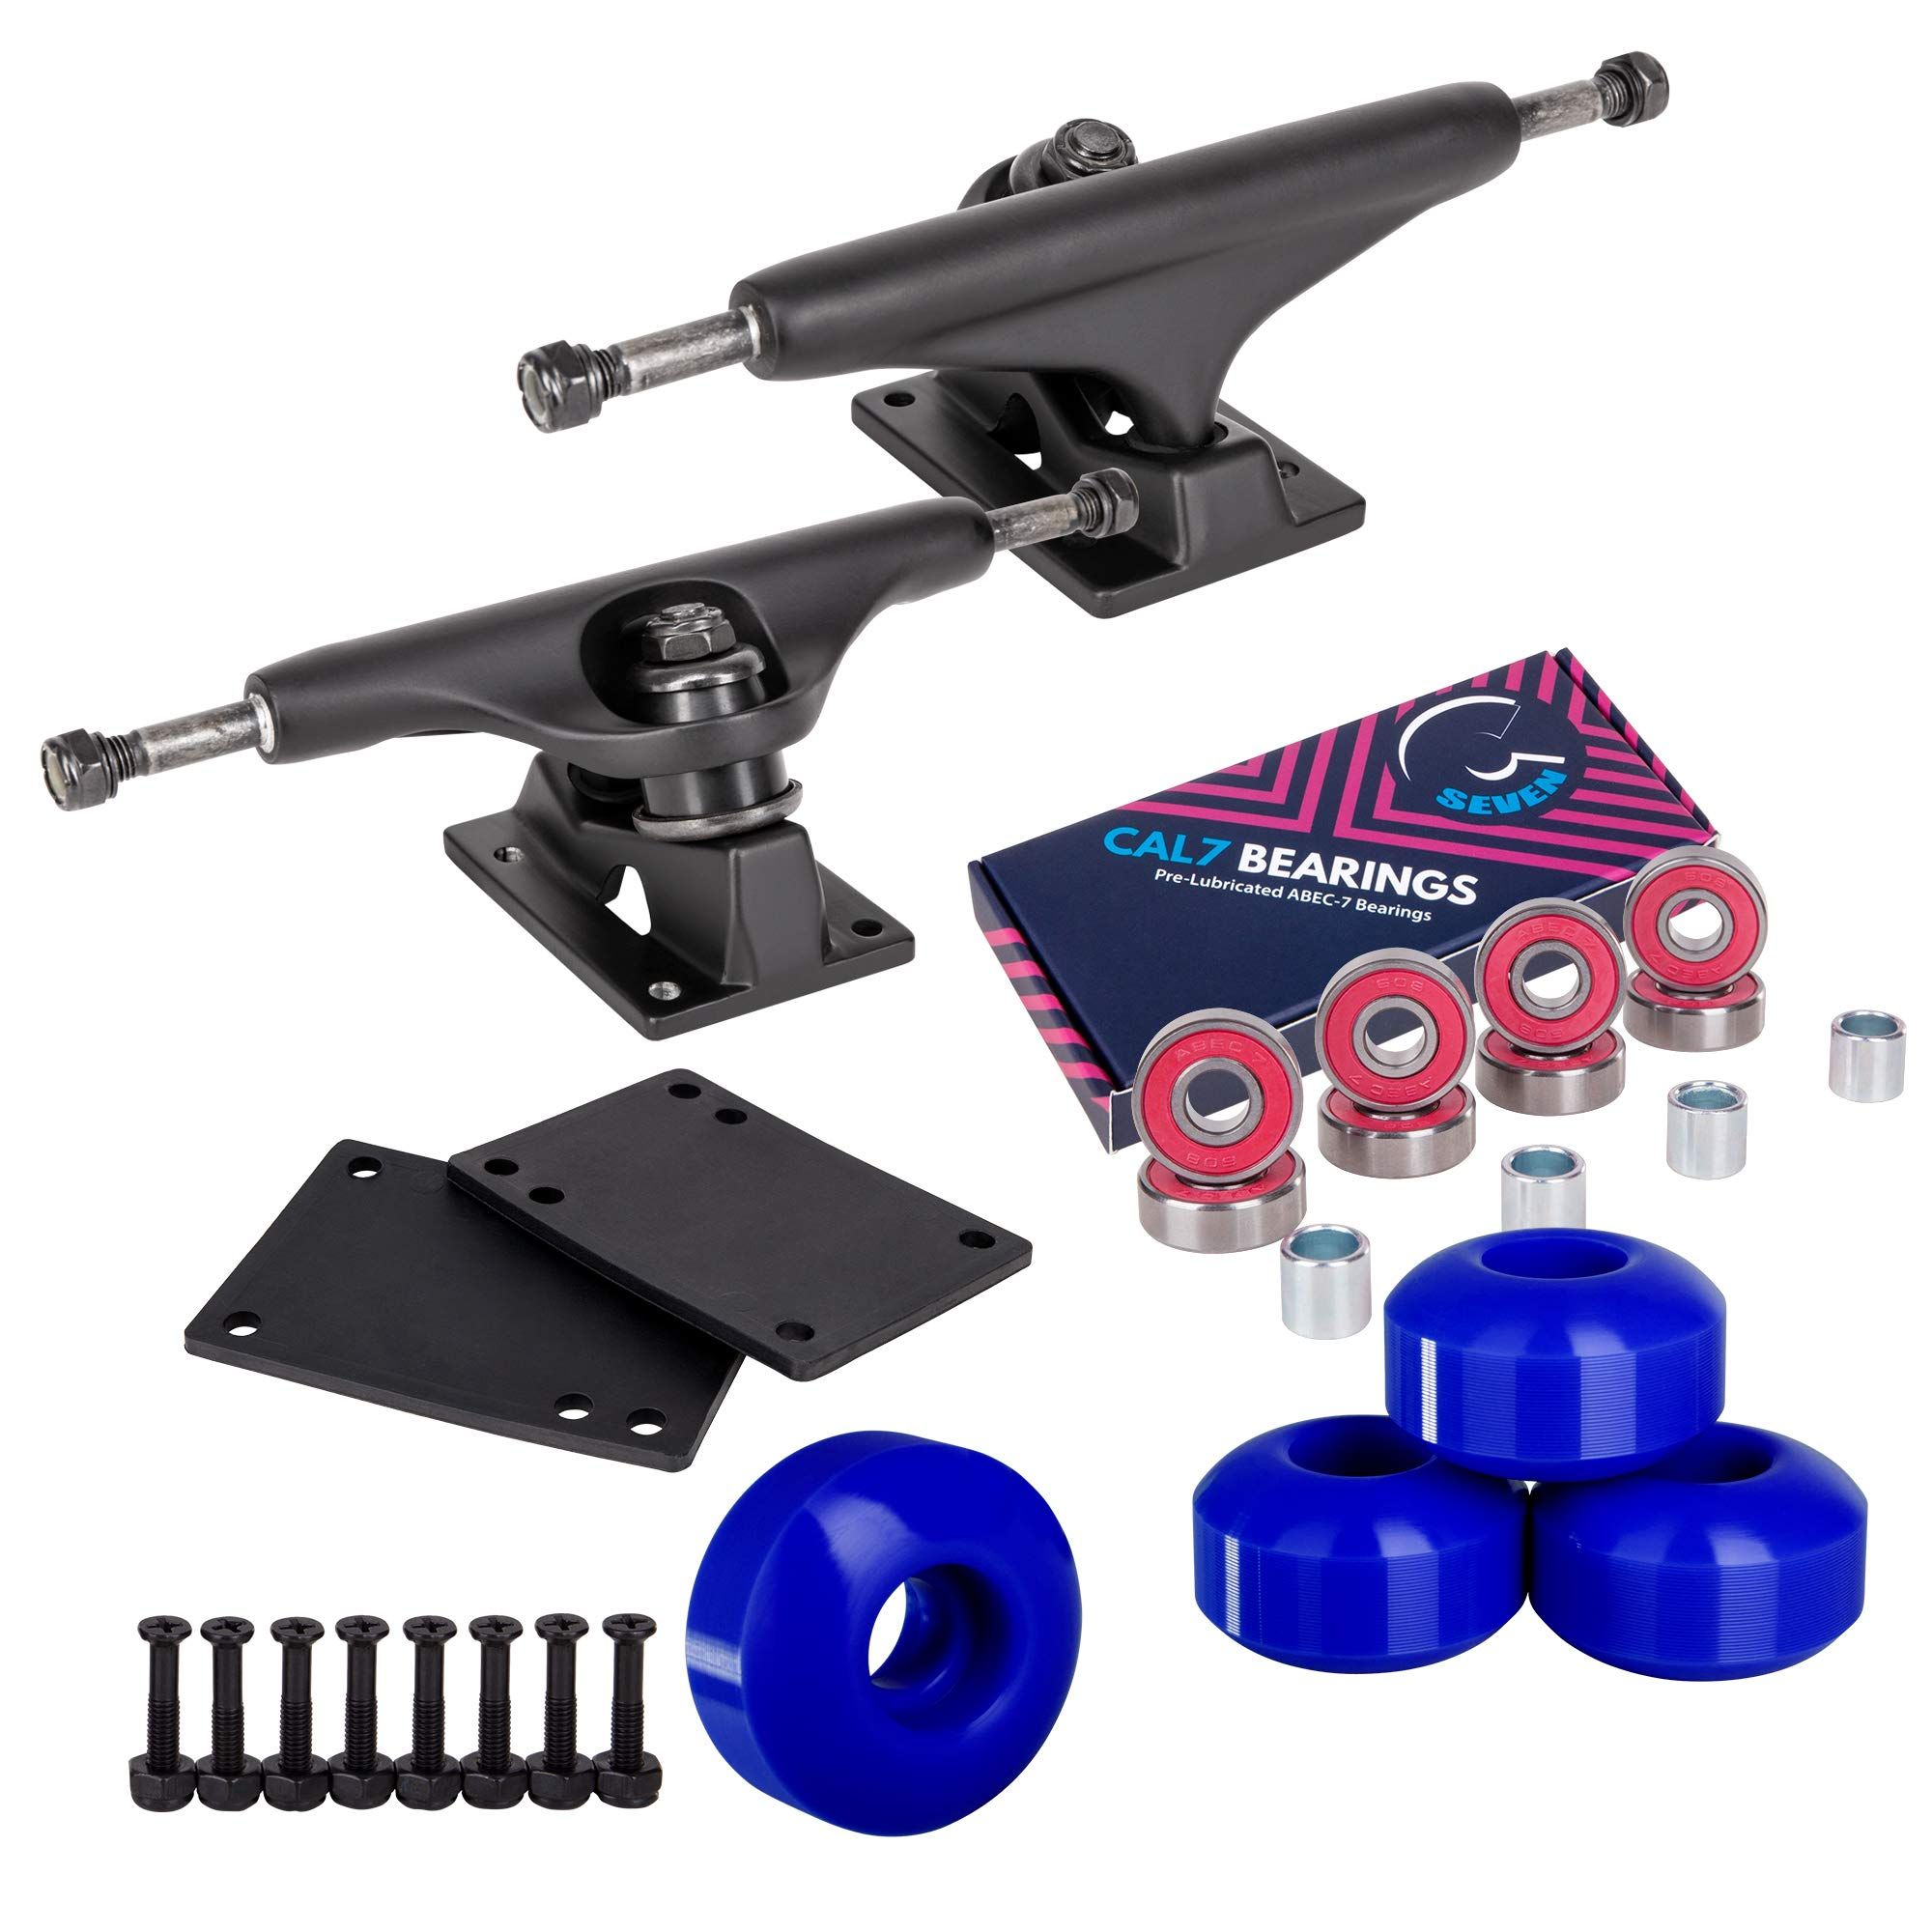 Cal 7 Skateboard Package, Complete Combo Set with 5.5 Inch Quality Aluminum Trucks, 52mm 99A Wheels, Bearings & Hardware (Blue) by Cal 7